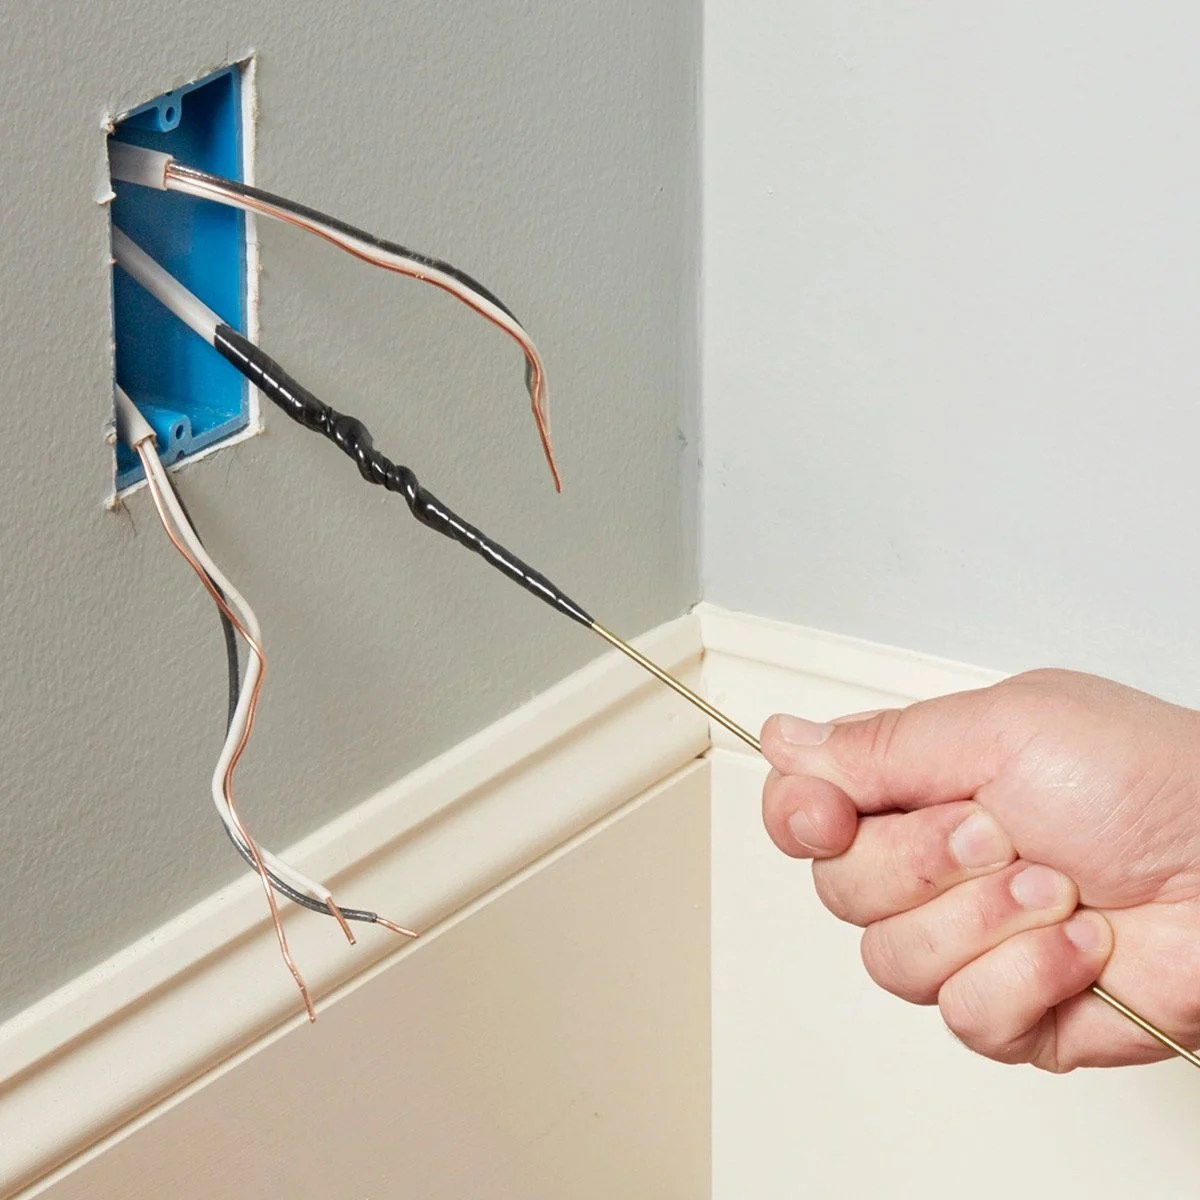 hight resolution of fishing wires through outlet